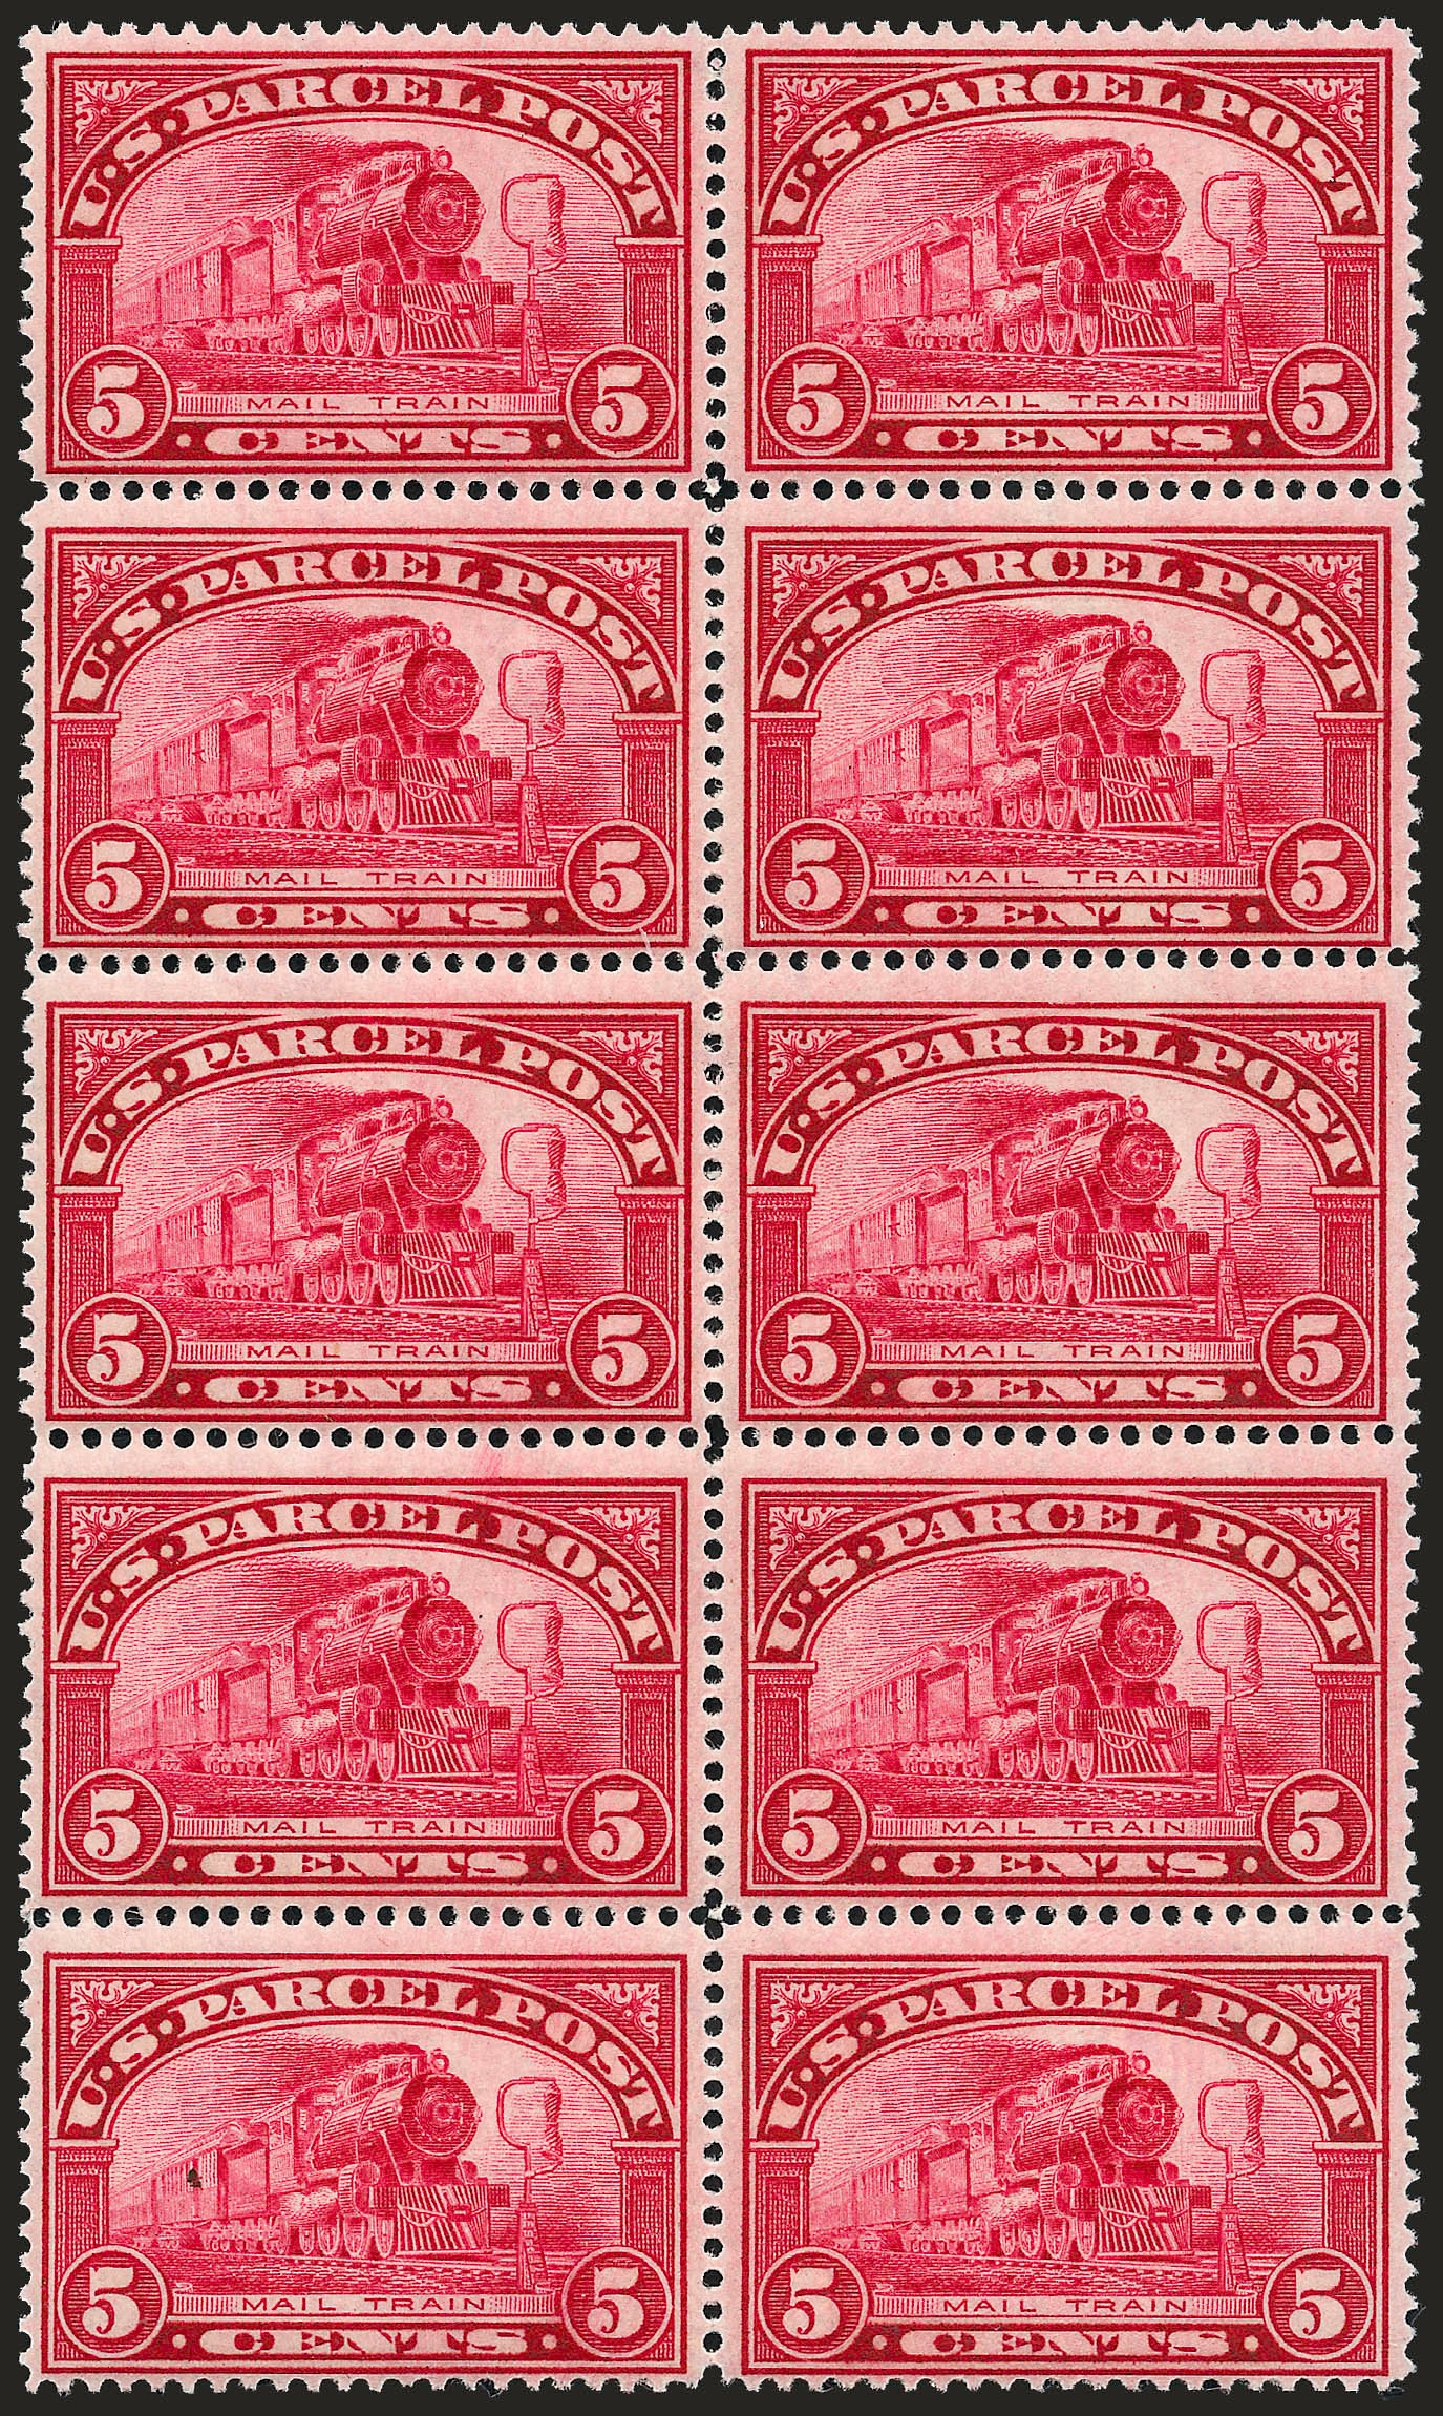 Values of US Stamps Scott Cat. # Q5 - 1913 5c Parcel Post. Robert Siegel Auction Galleries, Sep 2008, Sale 962, Lot 3044